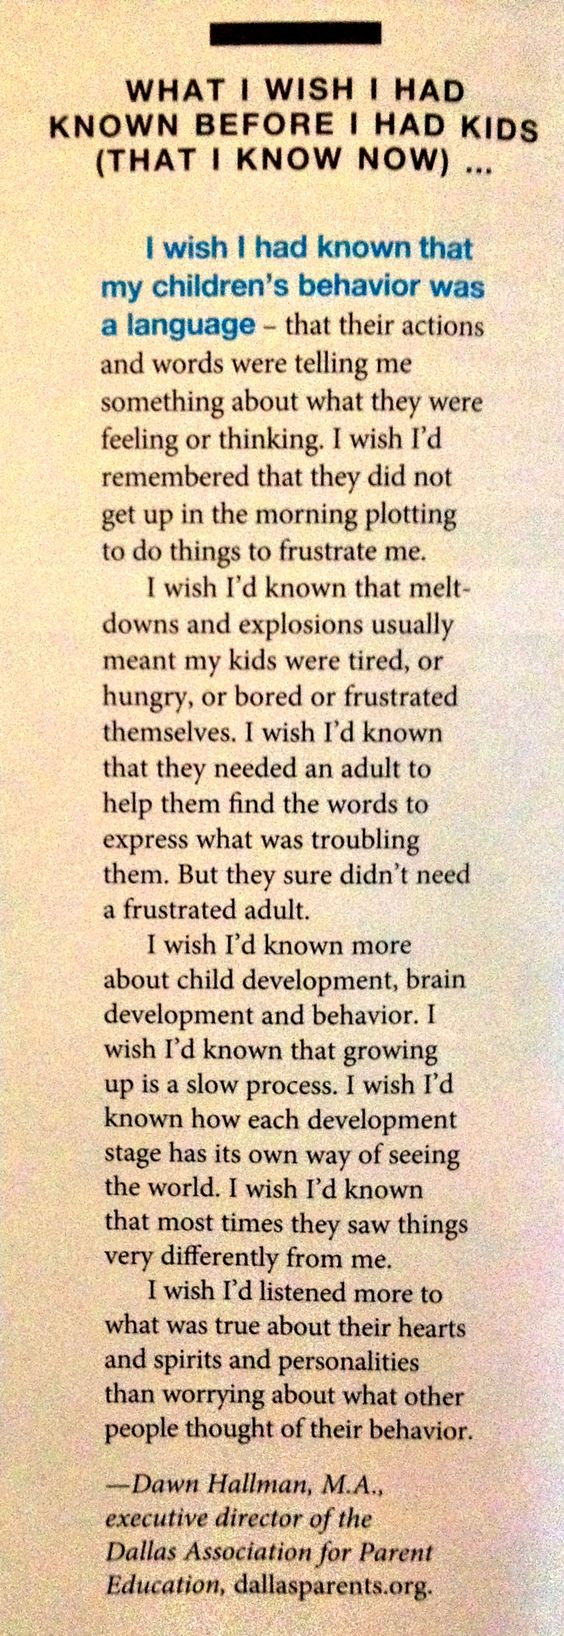 This is amazing advice for every parent, it's never too late to learn about our kids.